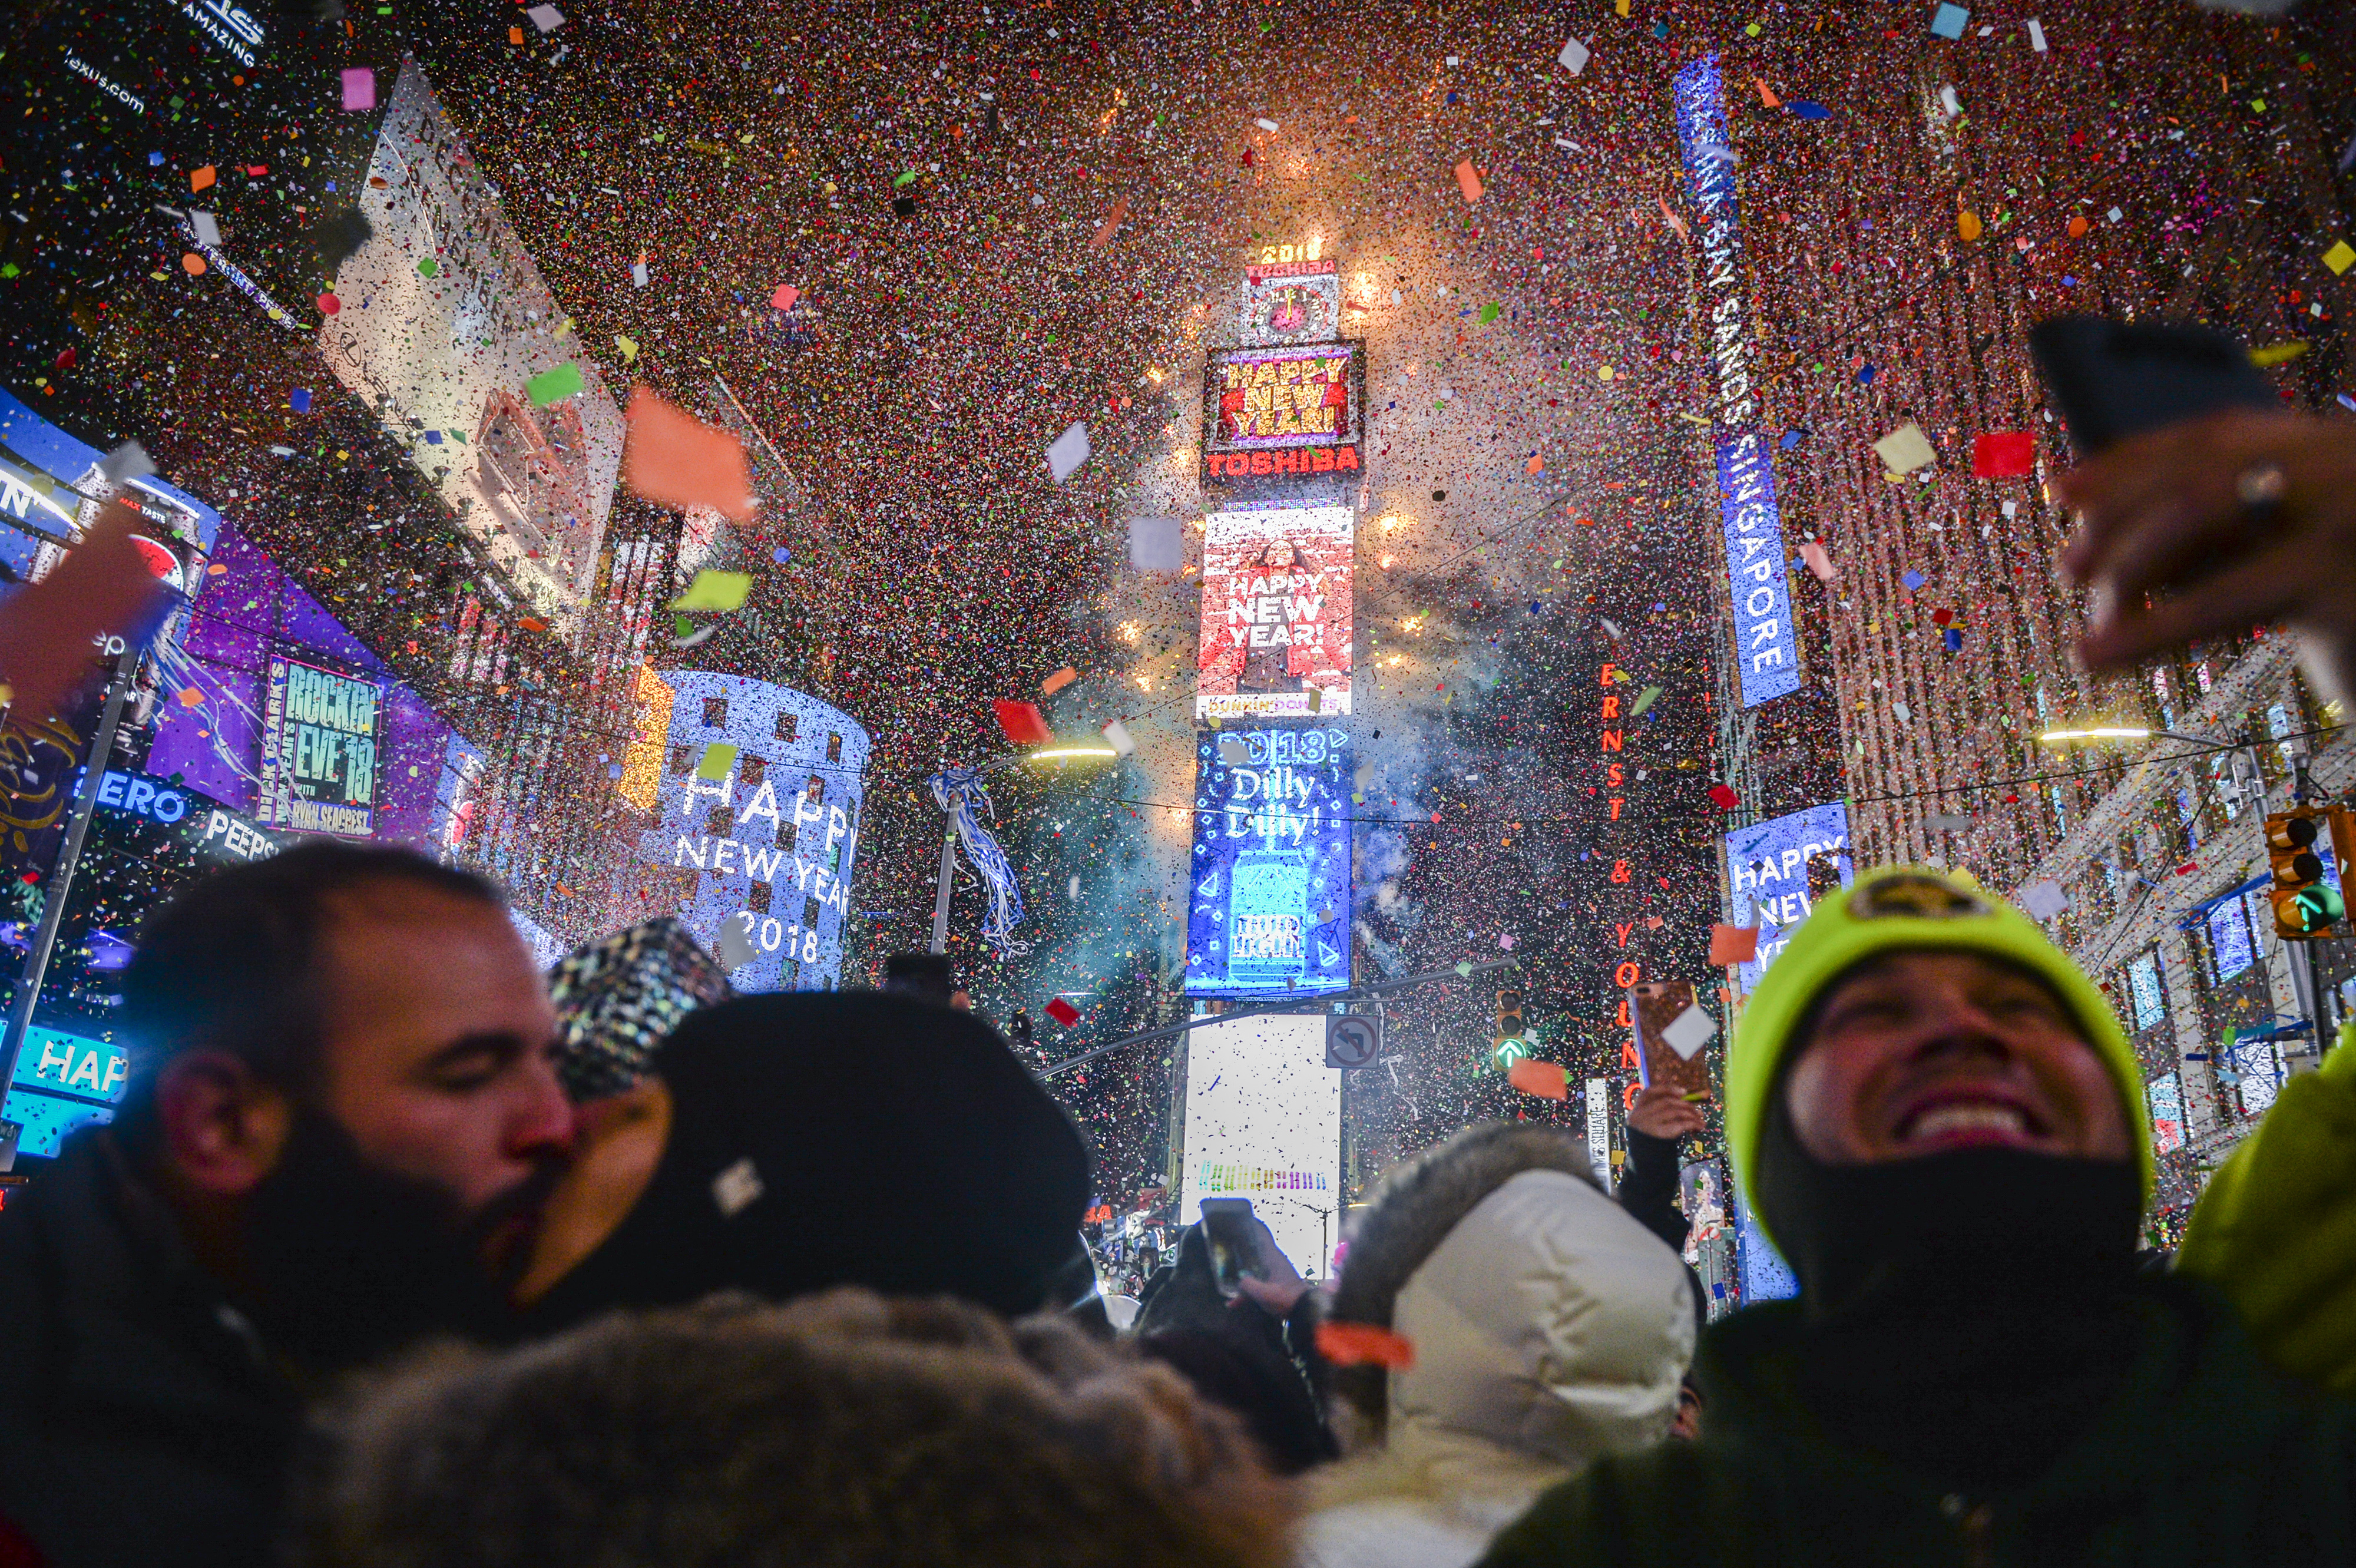 <div class='meta'><div class='origin-logo' data-origin='AP'></div><span class='caption-text' data-credit='Go Nakamura'>People celebrate New Year as confetti fall down after the countdown to midnight in Times Square during New Year's celebrations, Monday, Jan. 1, 2018, in New York.</span></div>